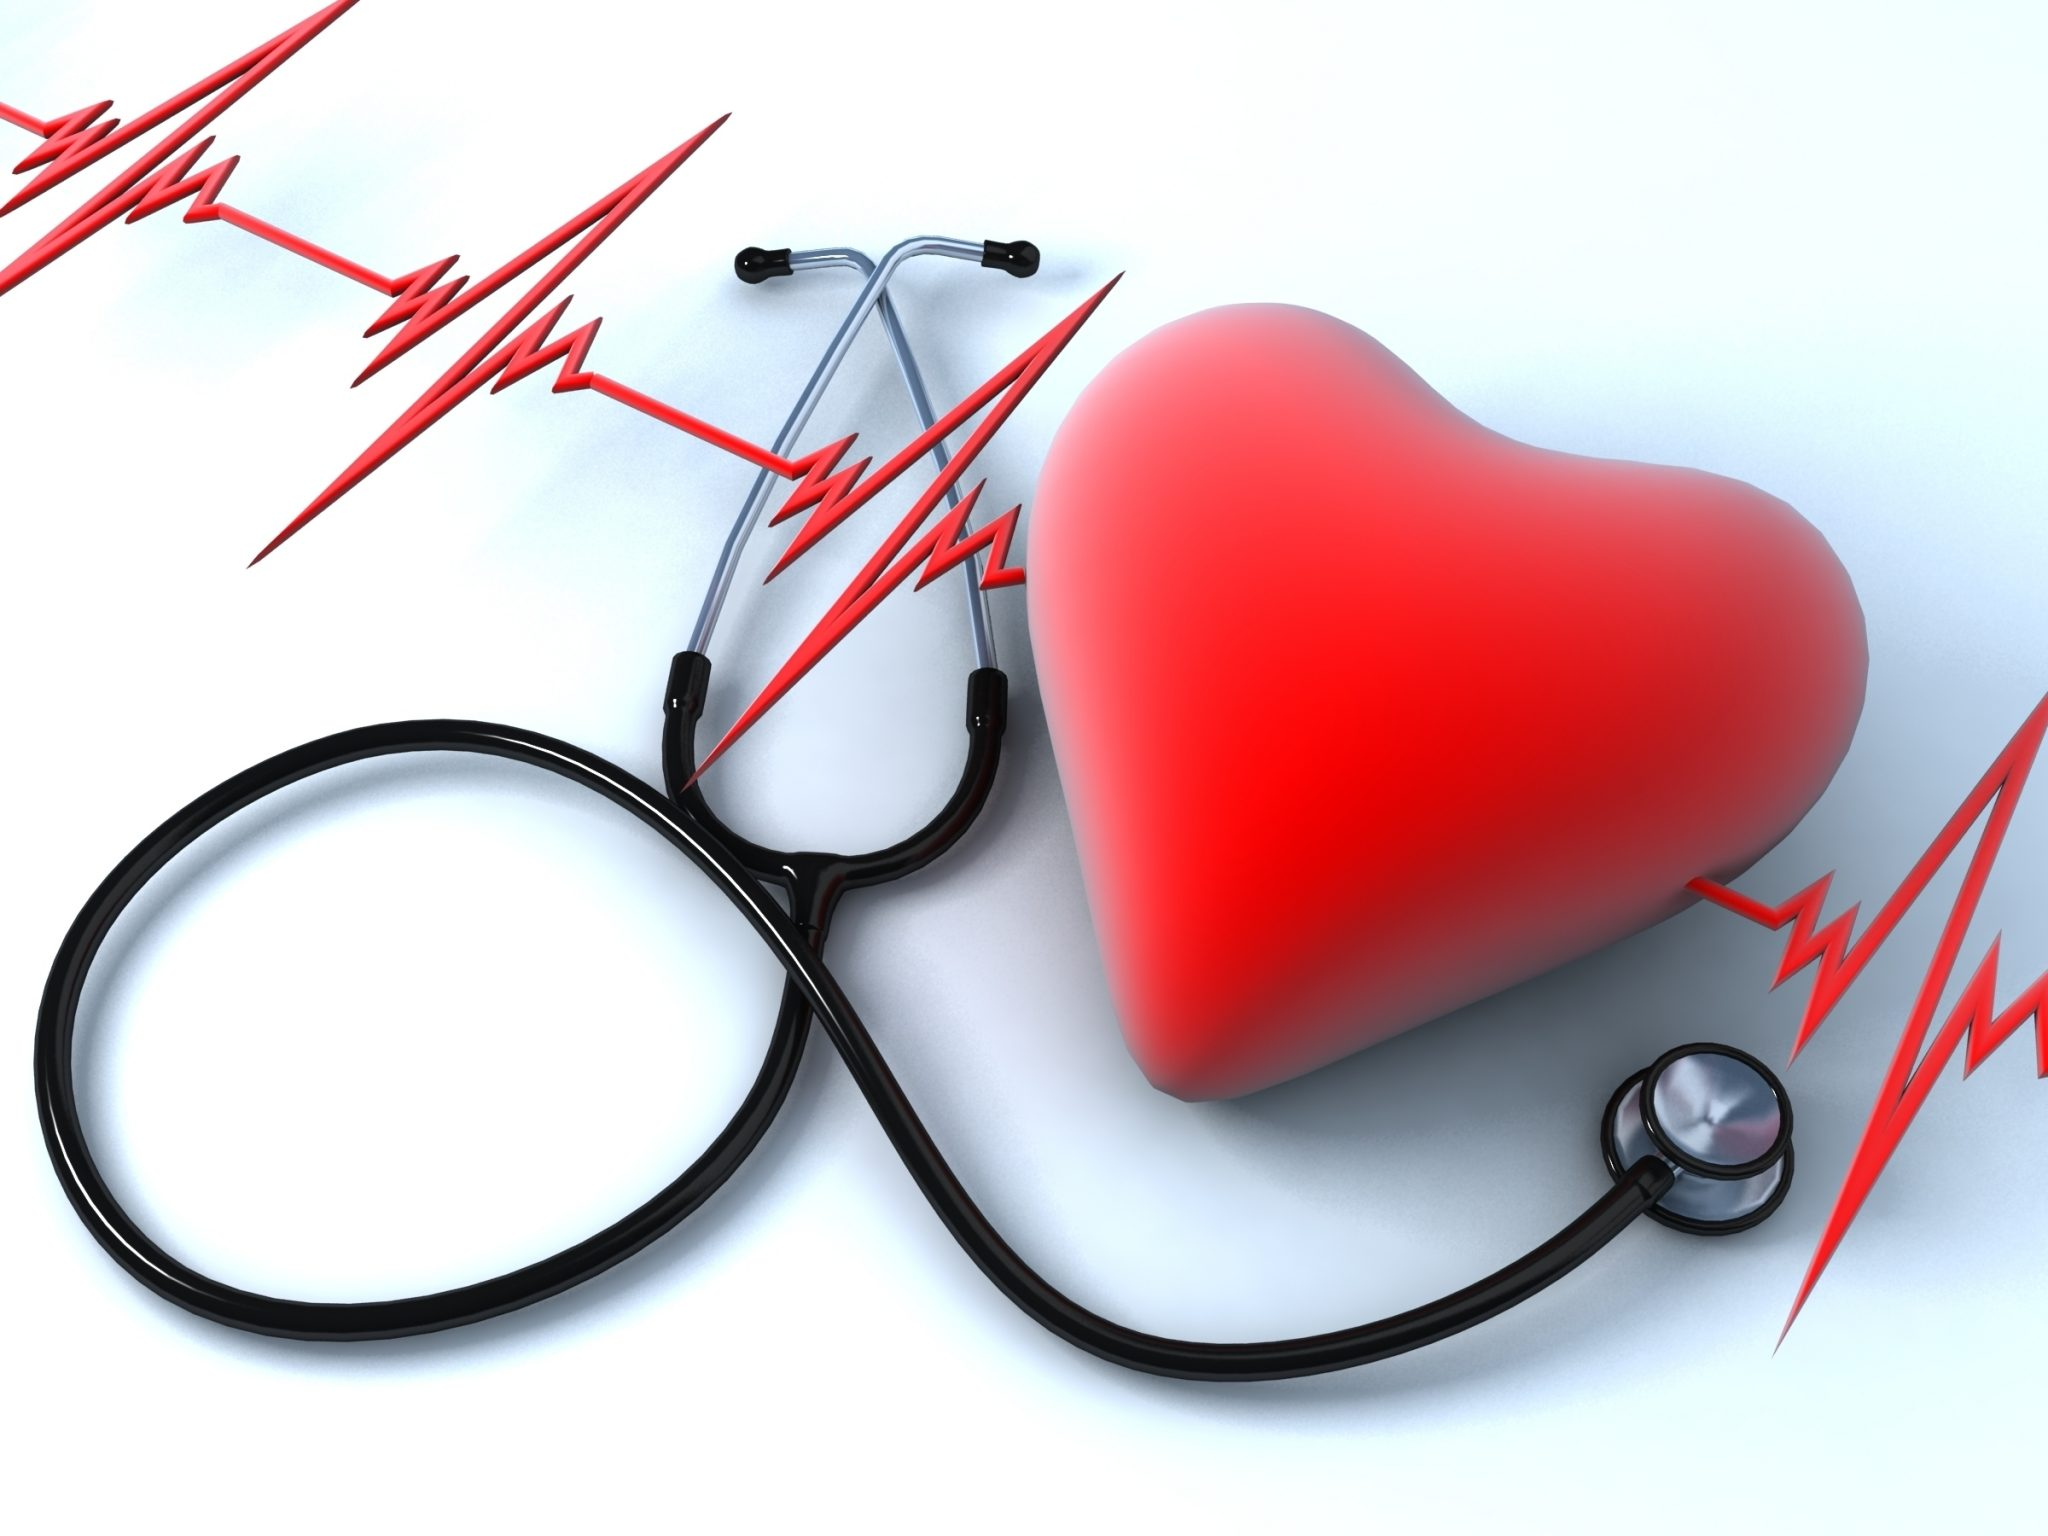 Discount in Earnings As a result of Severe Medical Issues